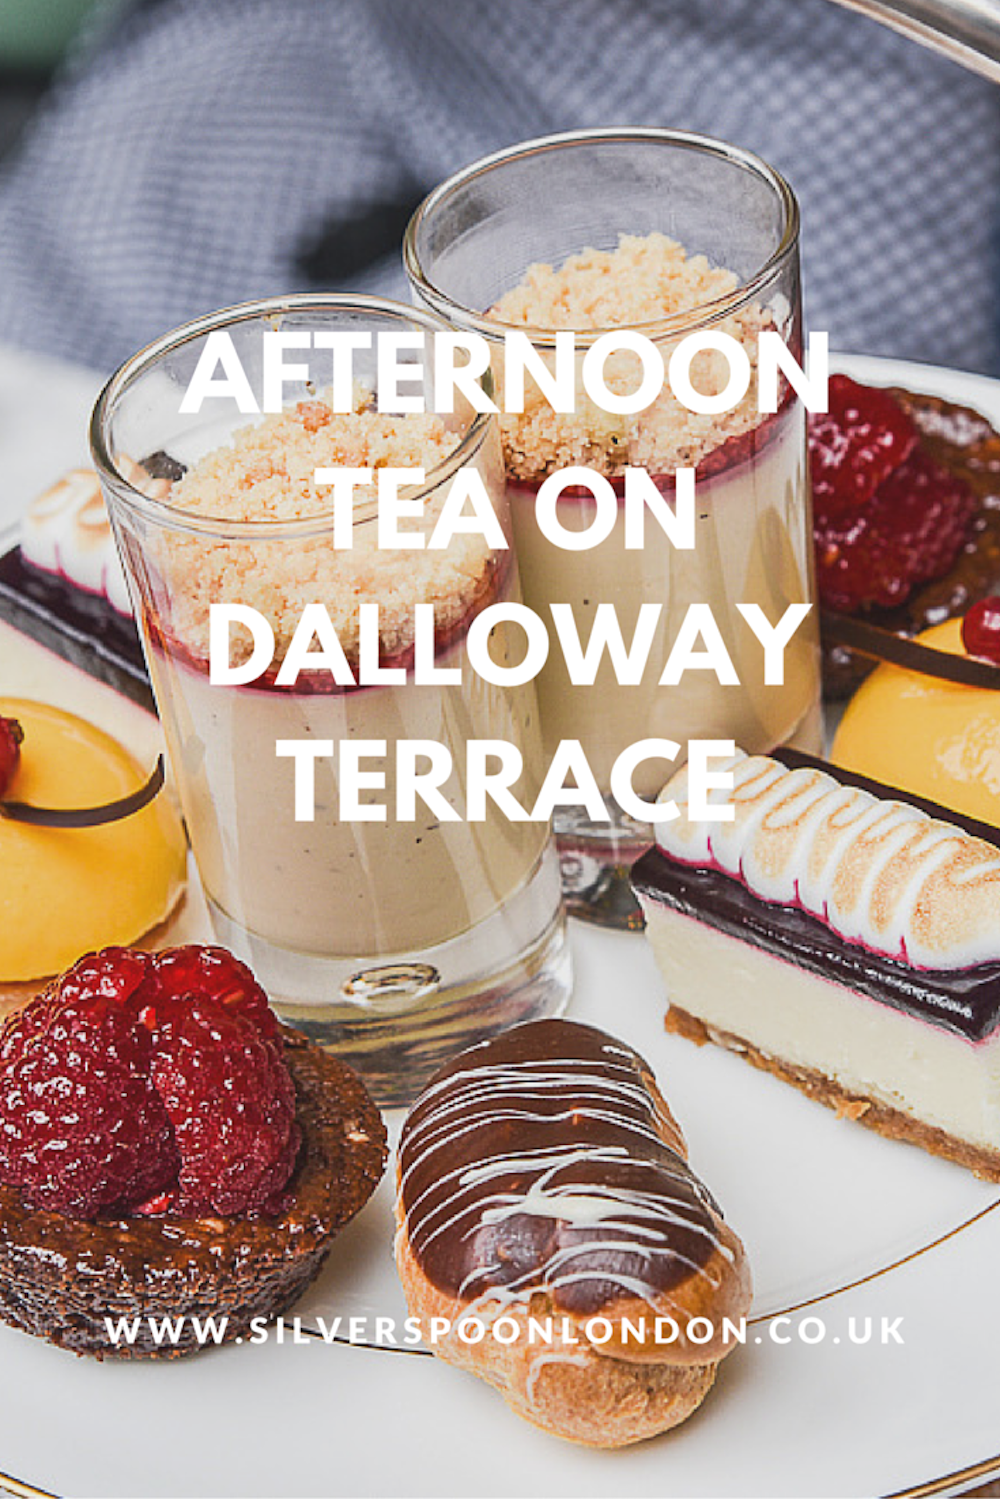 Afternoon Tea on Dalloway Terrace